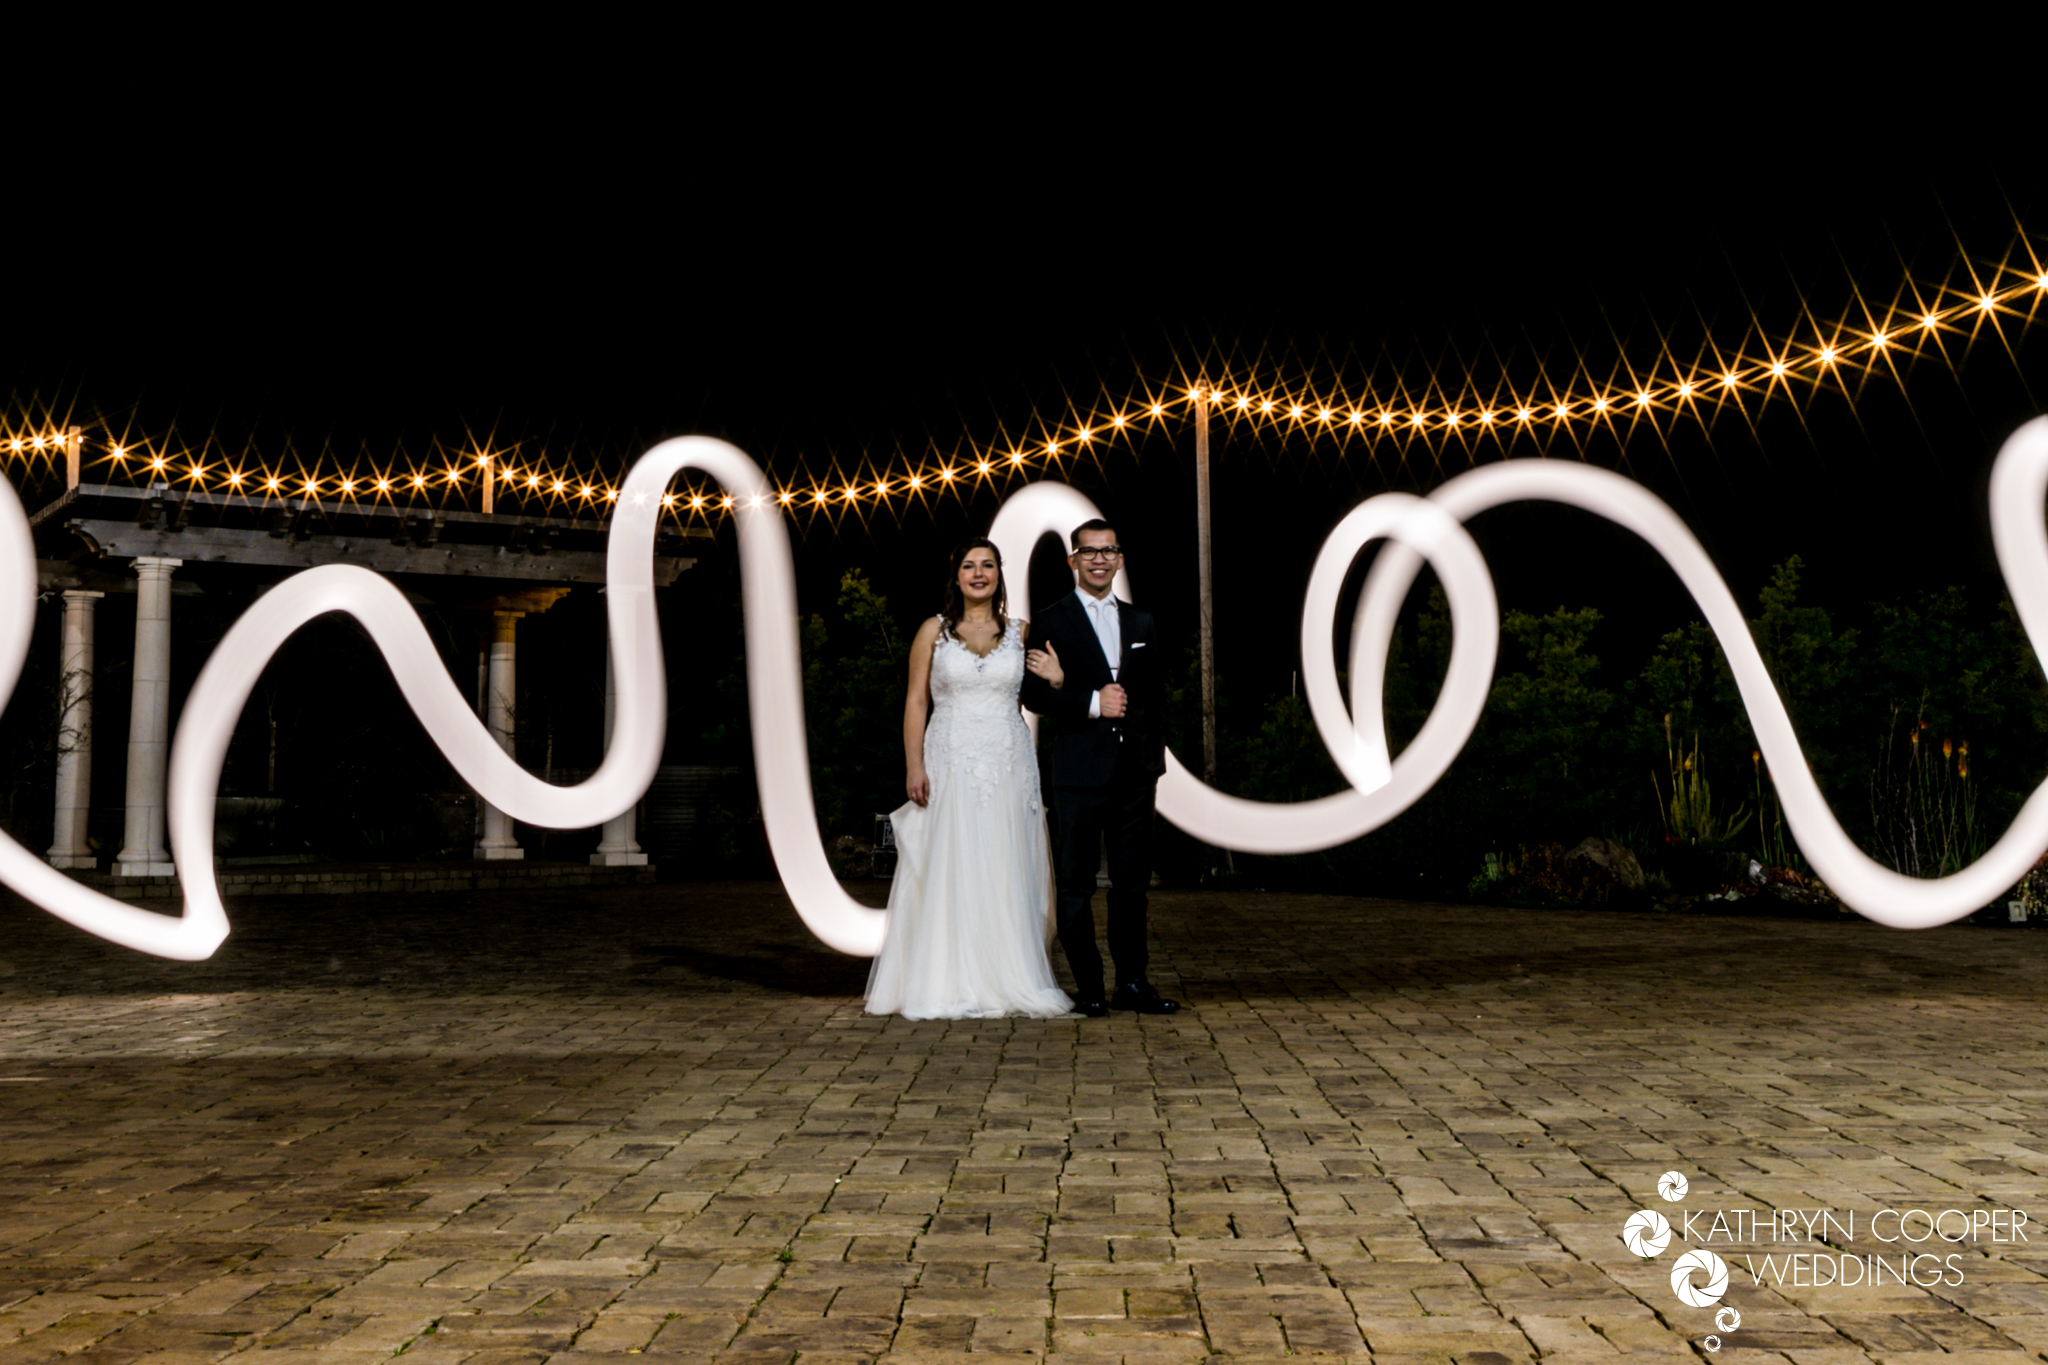 long exposure creative wedding shot with light in Sunol California by Sunold wedding photographer Kathryn Cooper